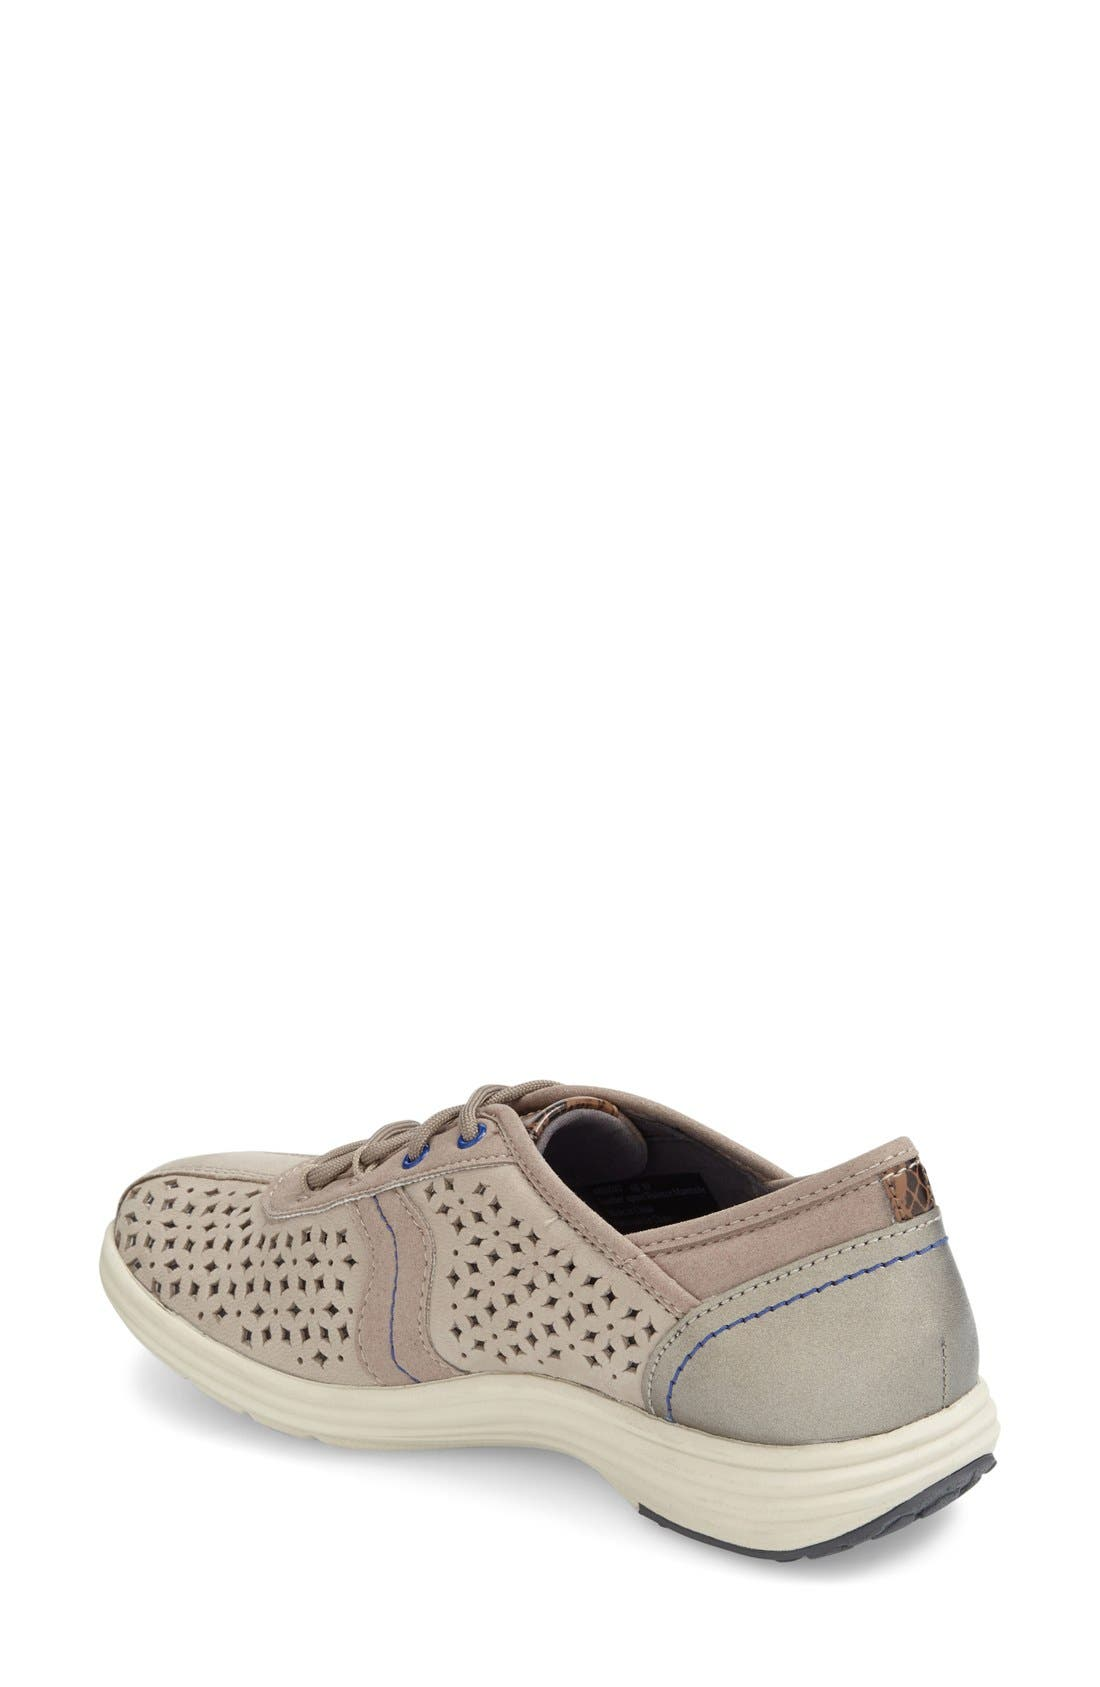 ARAVON,                             'Betty' Sneaker,                             Alternate thumbnail 2, color,                             GREY LEATHER